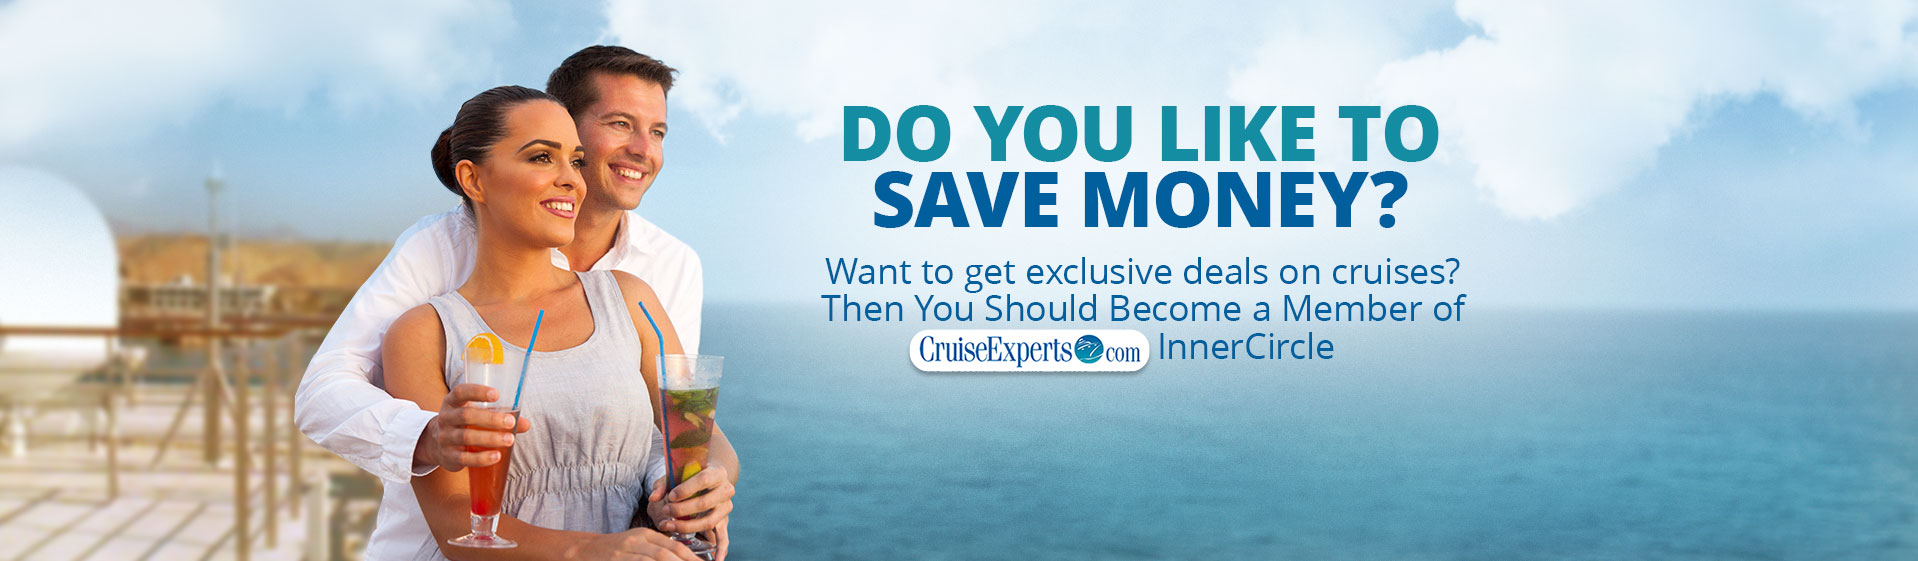 InnerCircle - Save money and join today!